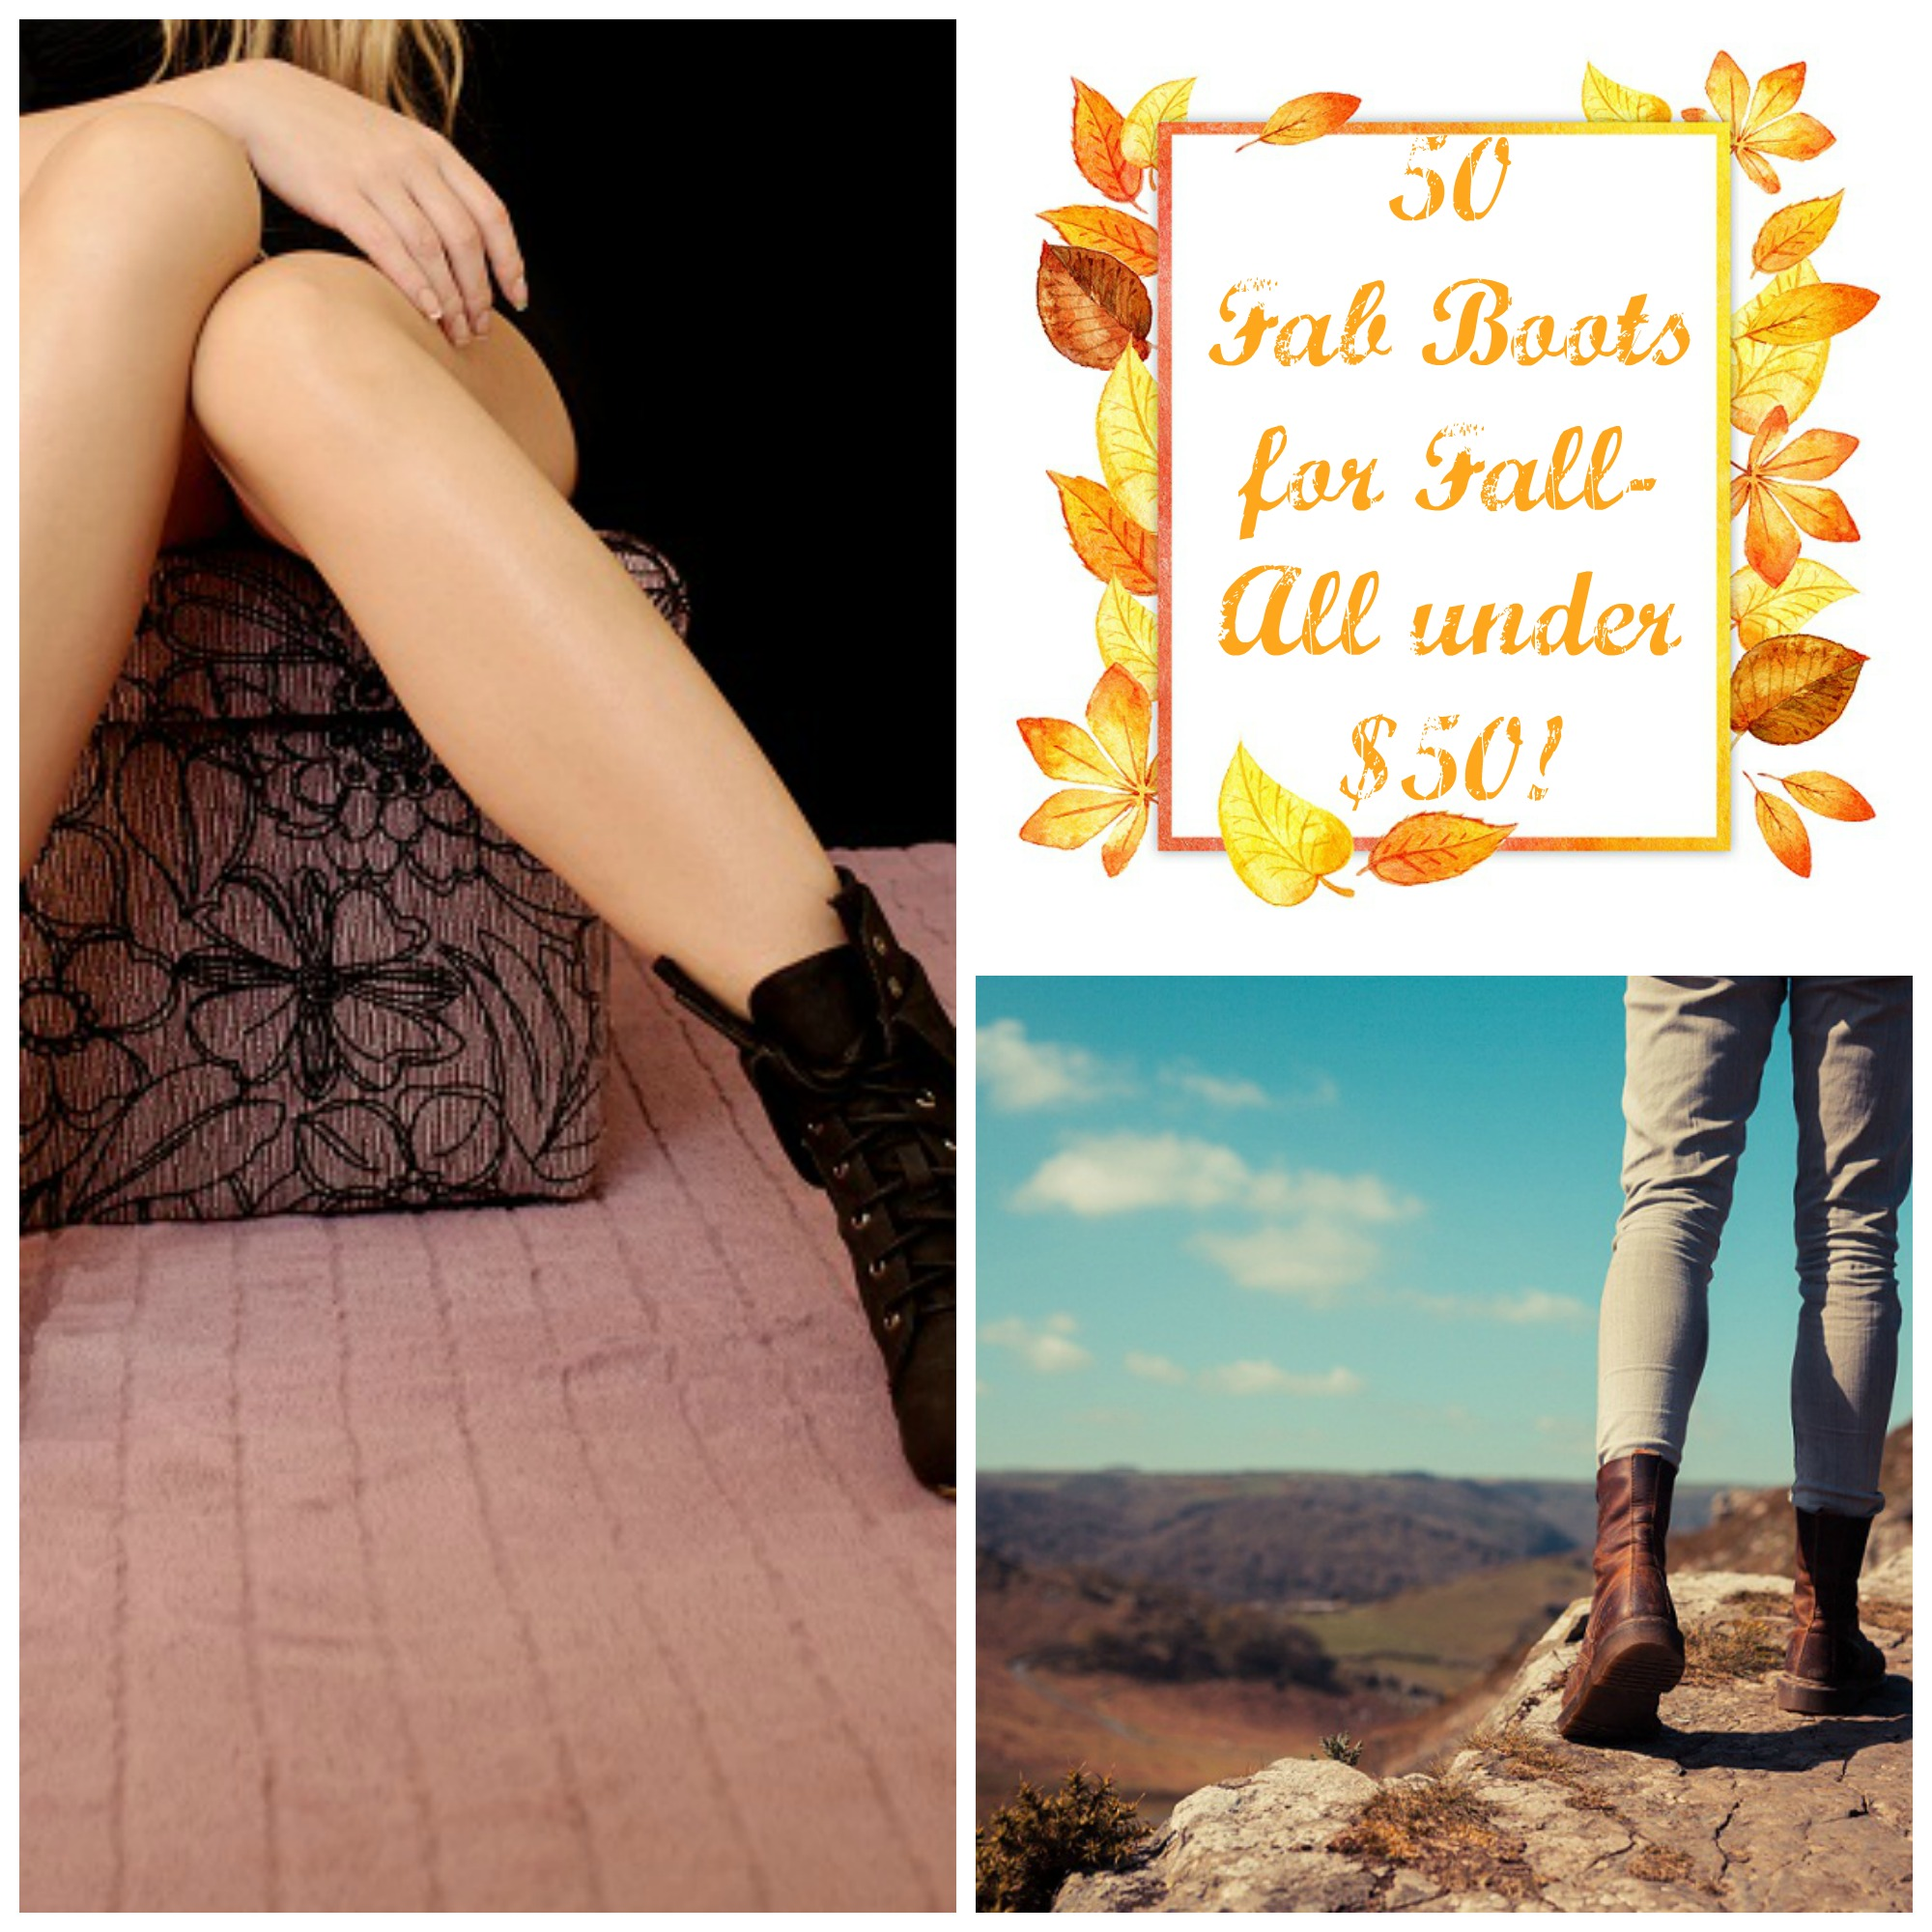 50 fab boots collage-new